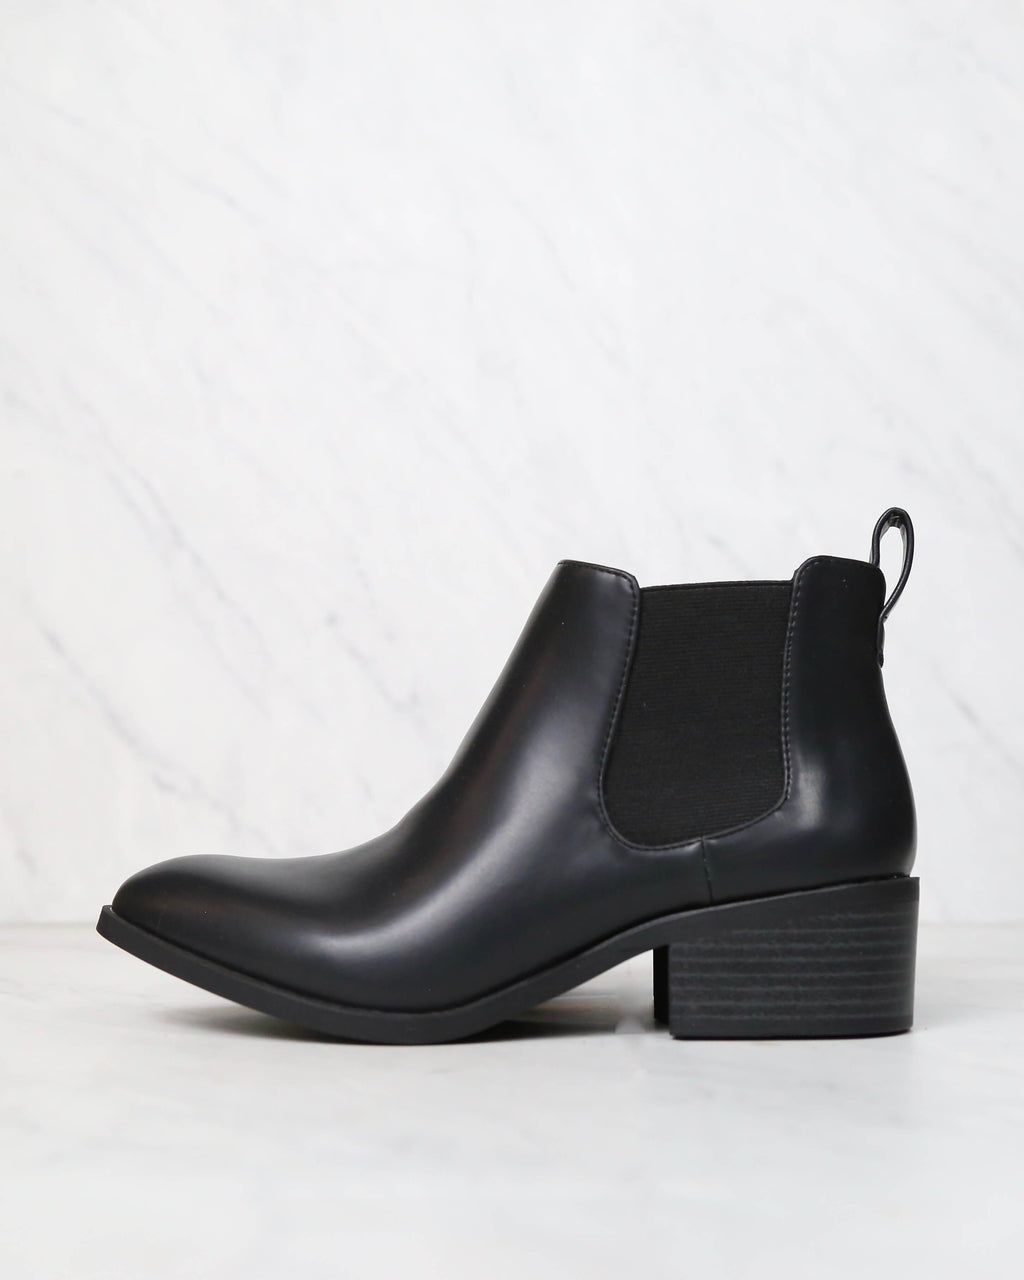 BC Footwear - Partner Modern Chelsea Ankle Boots in Black